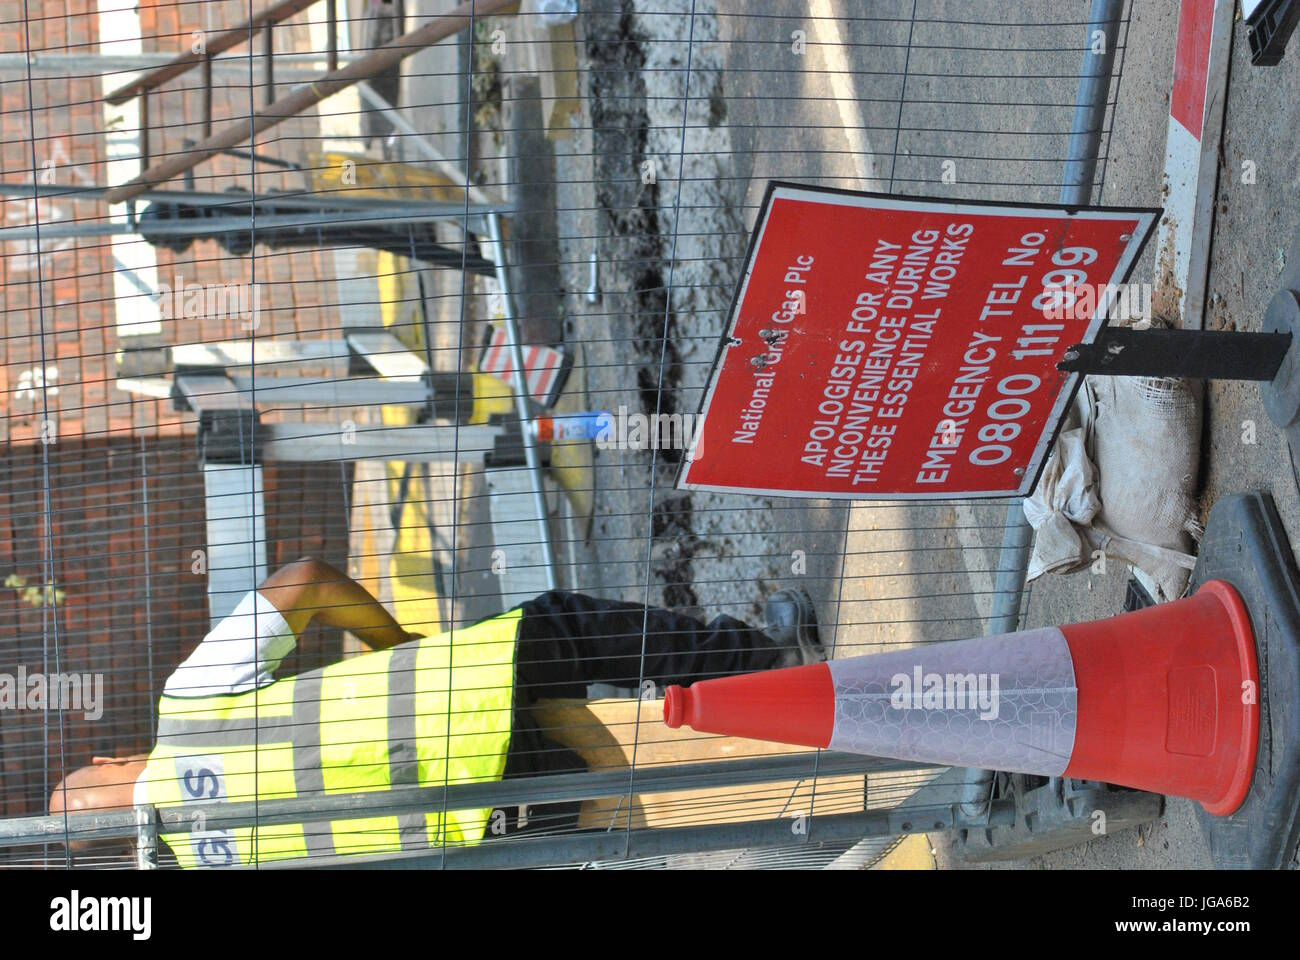 Grenfell Fire Disaster, nearby Gas repair work, Safety Checks, Grenfell Estate, London UK, 19th June, 2017 Credit - Stock Image